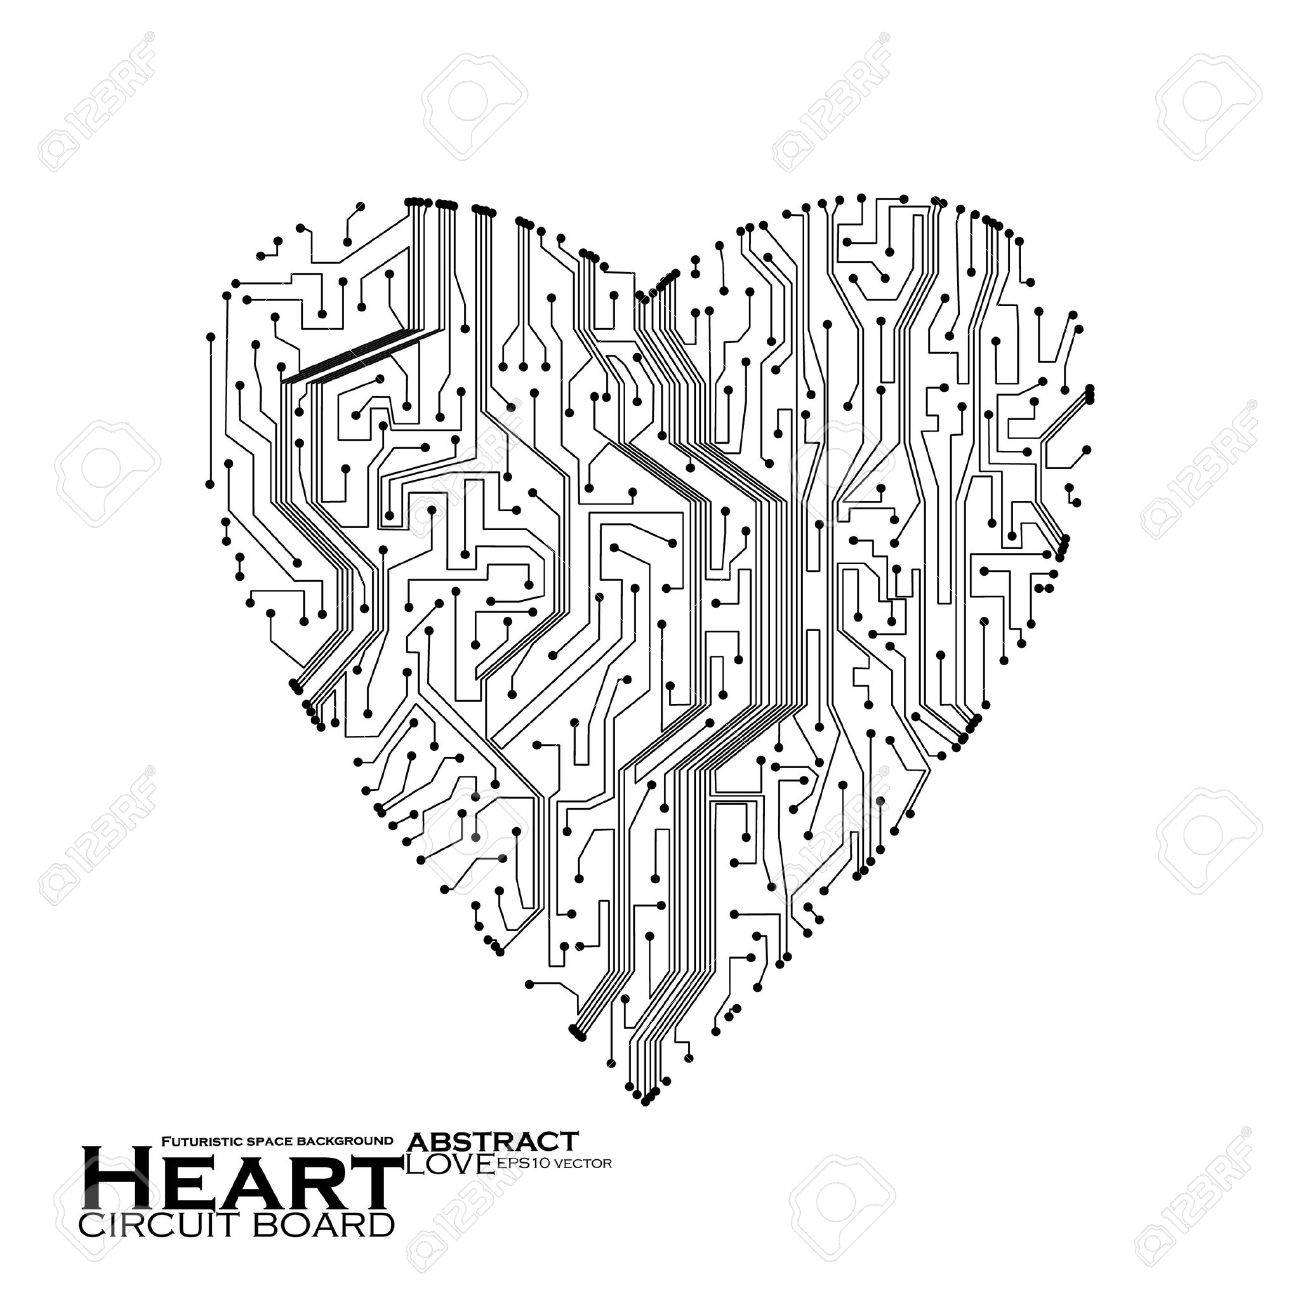 circuit board vector background, technology illustration, form of heart eps10 Stock Vector - 11990858